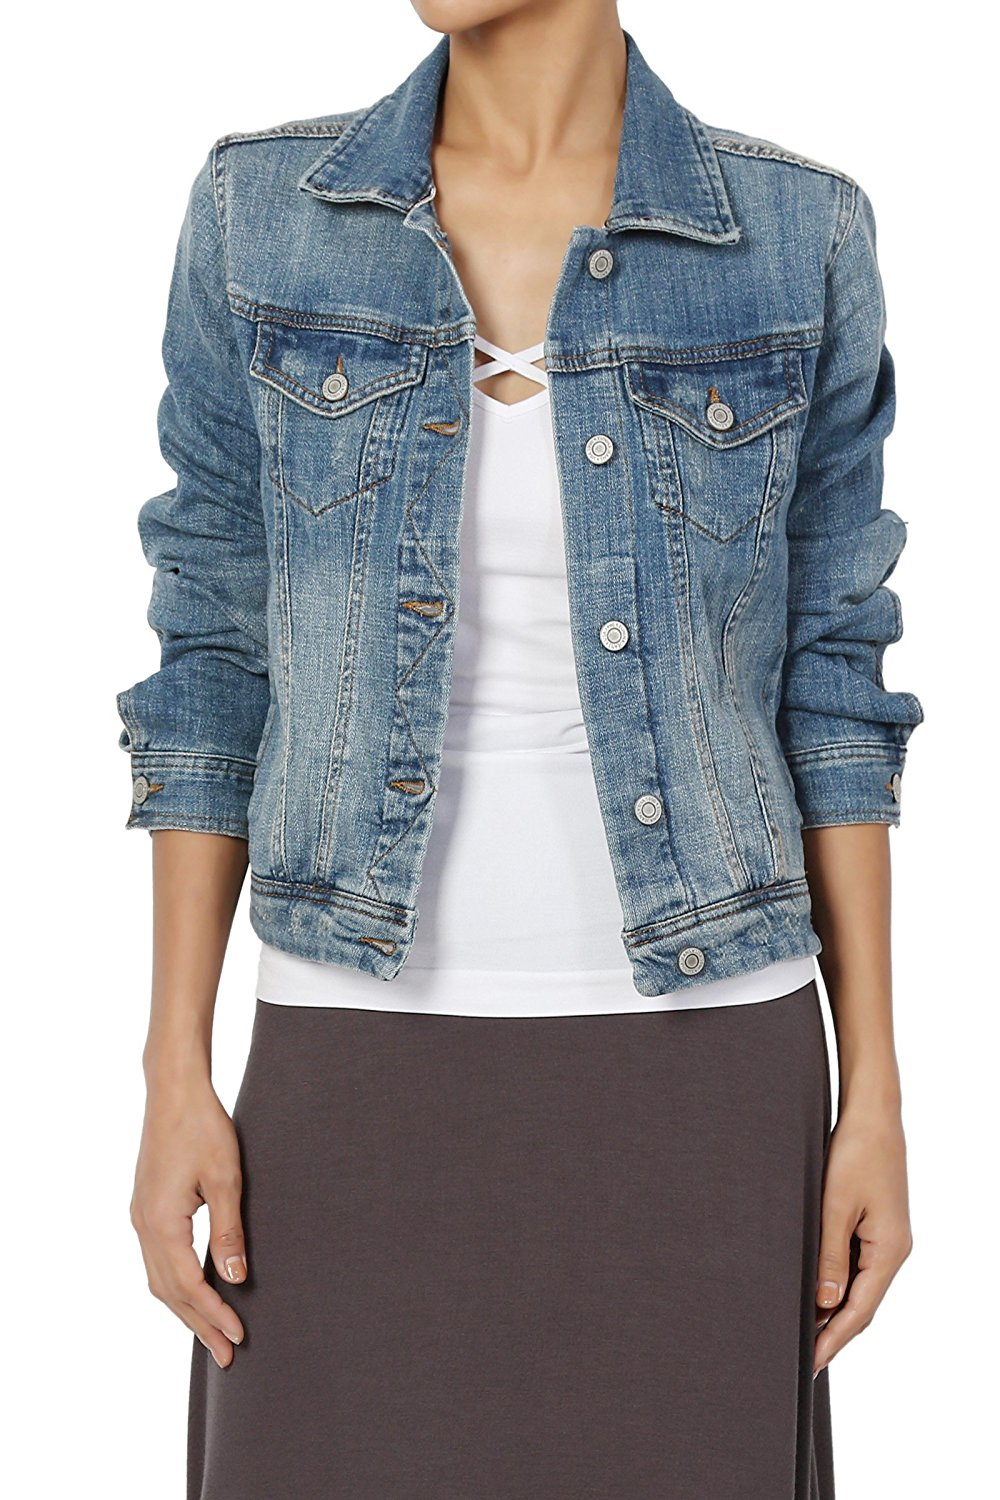 0dcd521768761 Get Quotations · TheMogan Women s Vintage Blue Stone Washed Denim Cropped  Jean Jacket